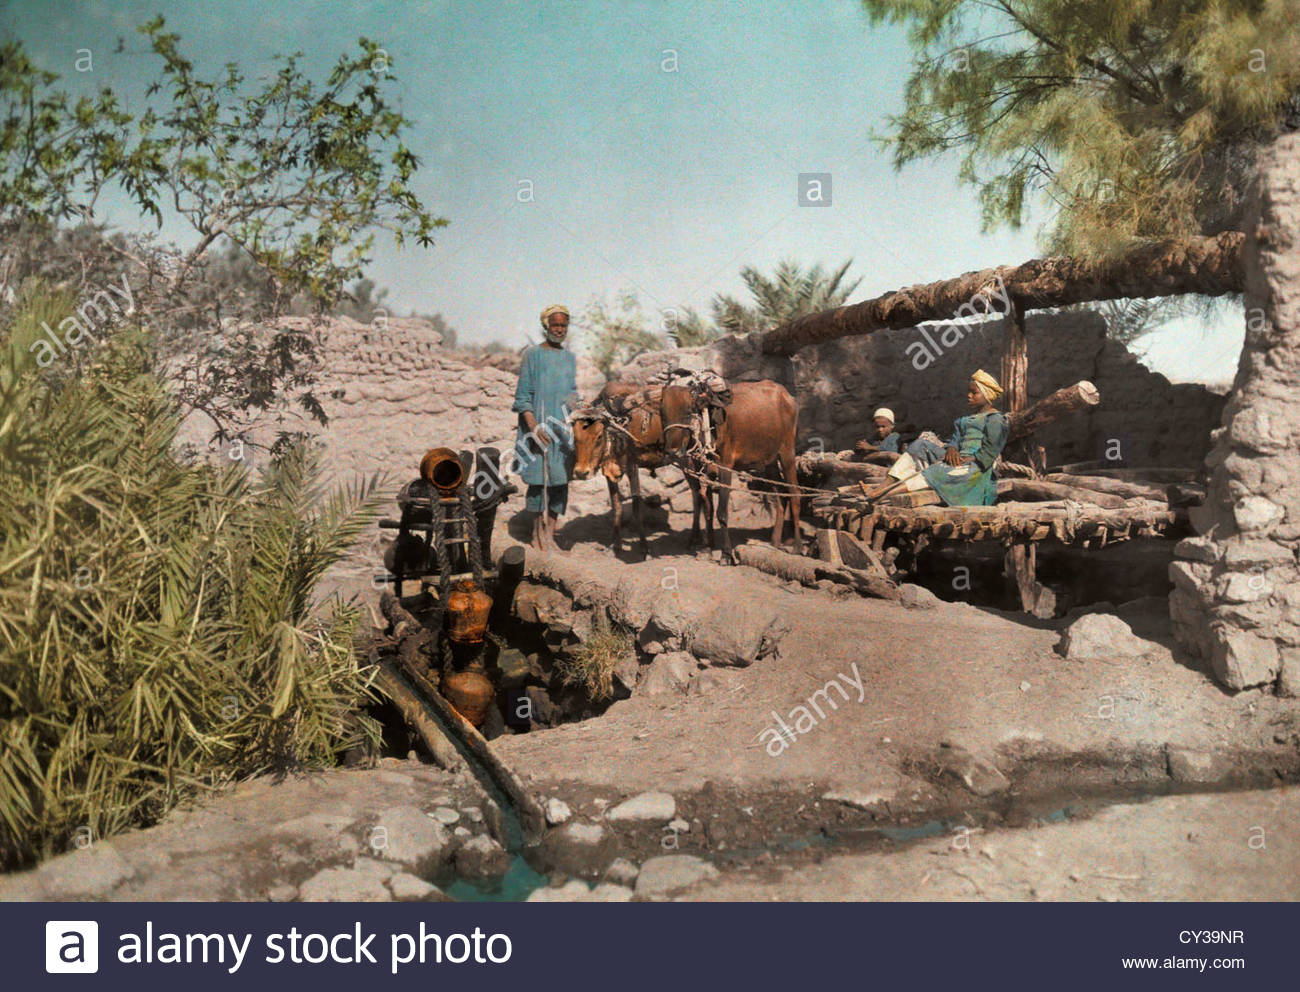 Men clean out the stagnant water with a water-scoop wheel. Stock Photo